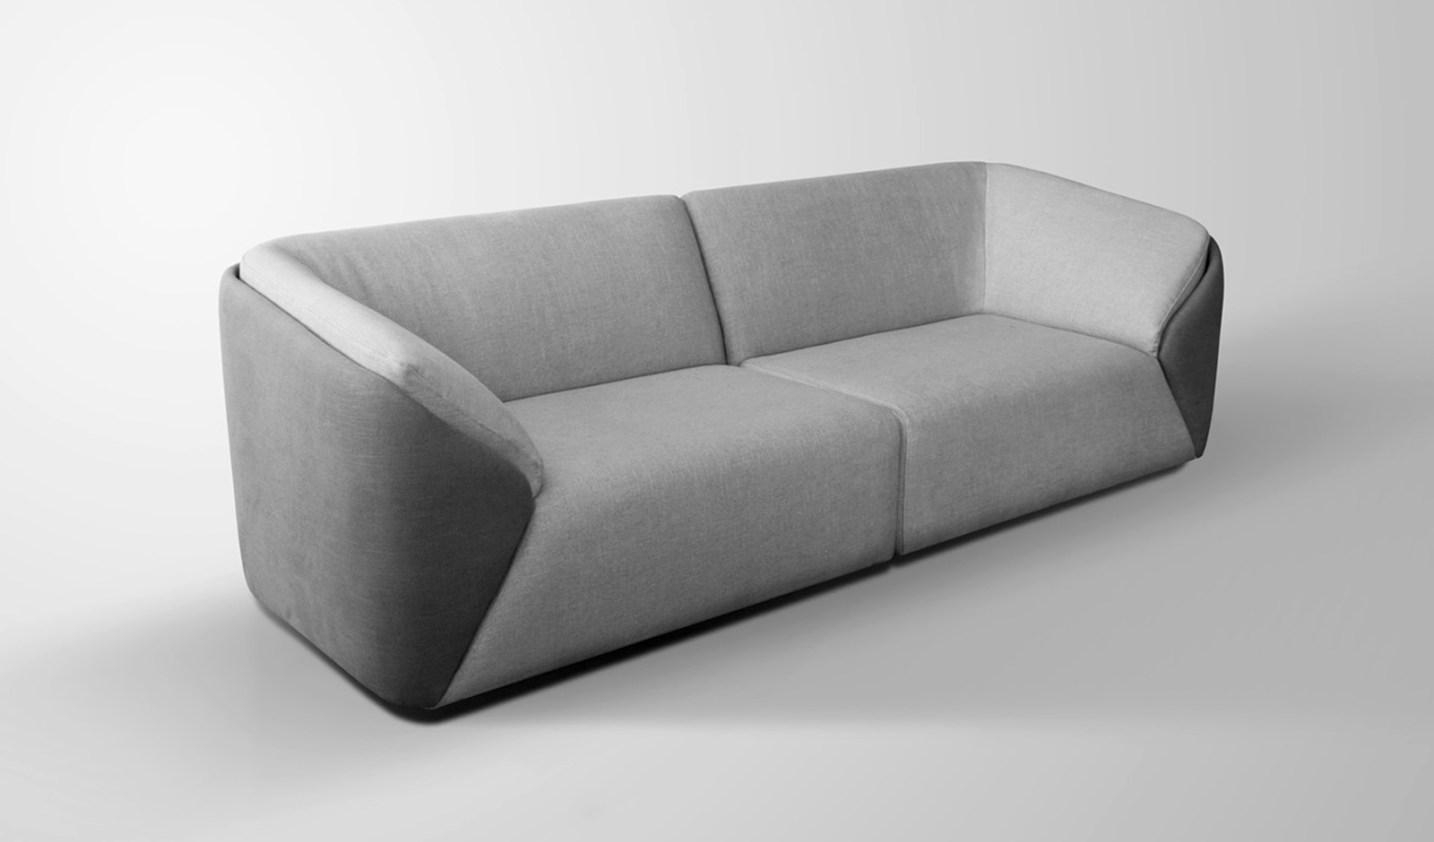 Sofa : Formidable Funky Garden Sofa Horrible Funky Sofa Promo Code Regarding Funky Sofas For Sale (View 20 of 20)